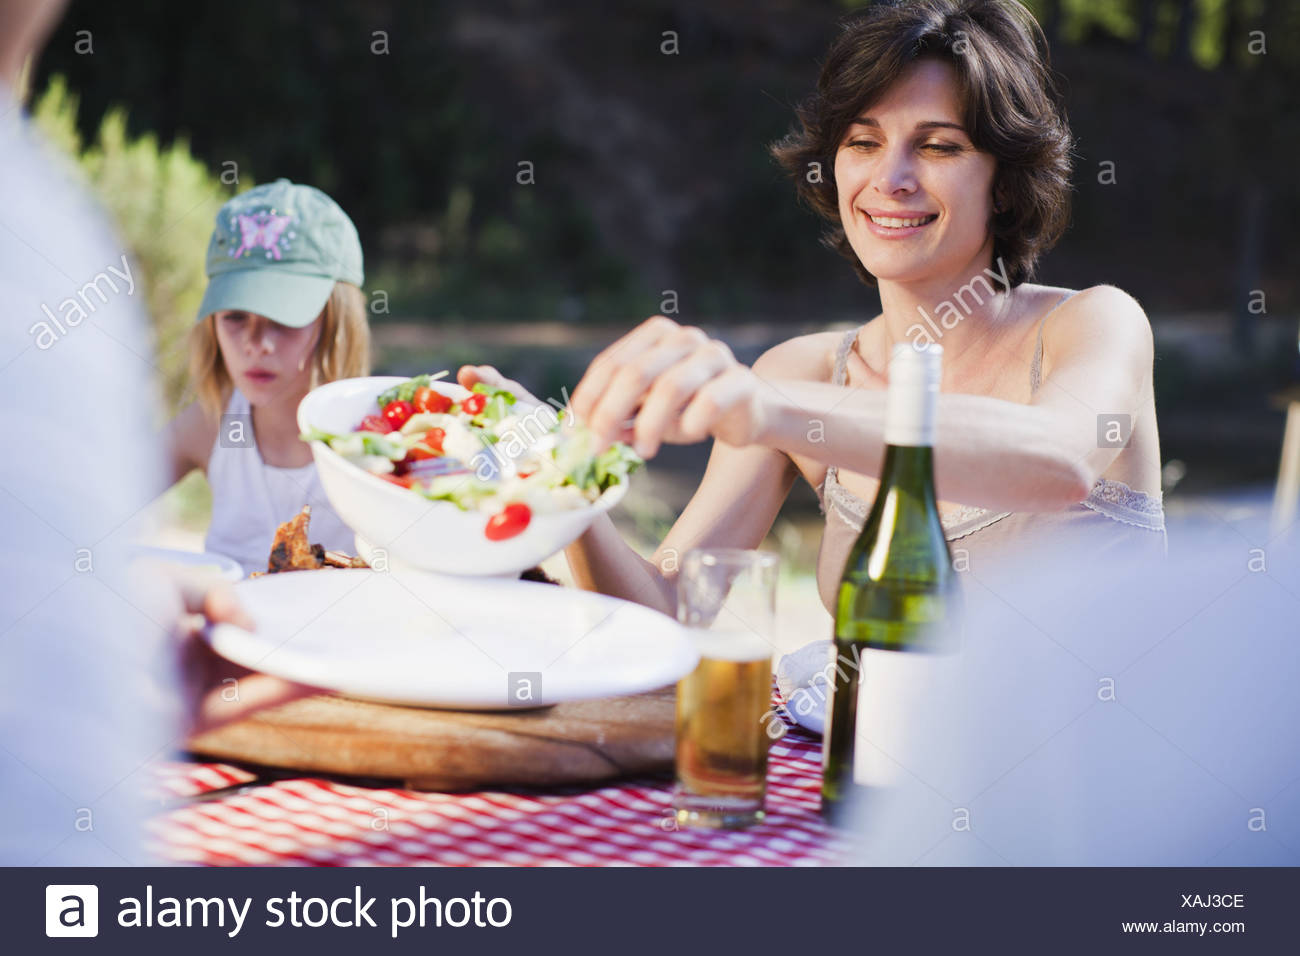 Mother serving salad at picnic - Stock Image